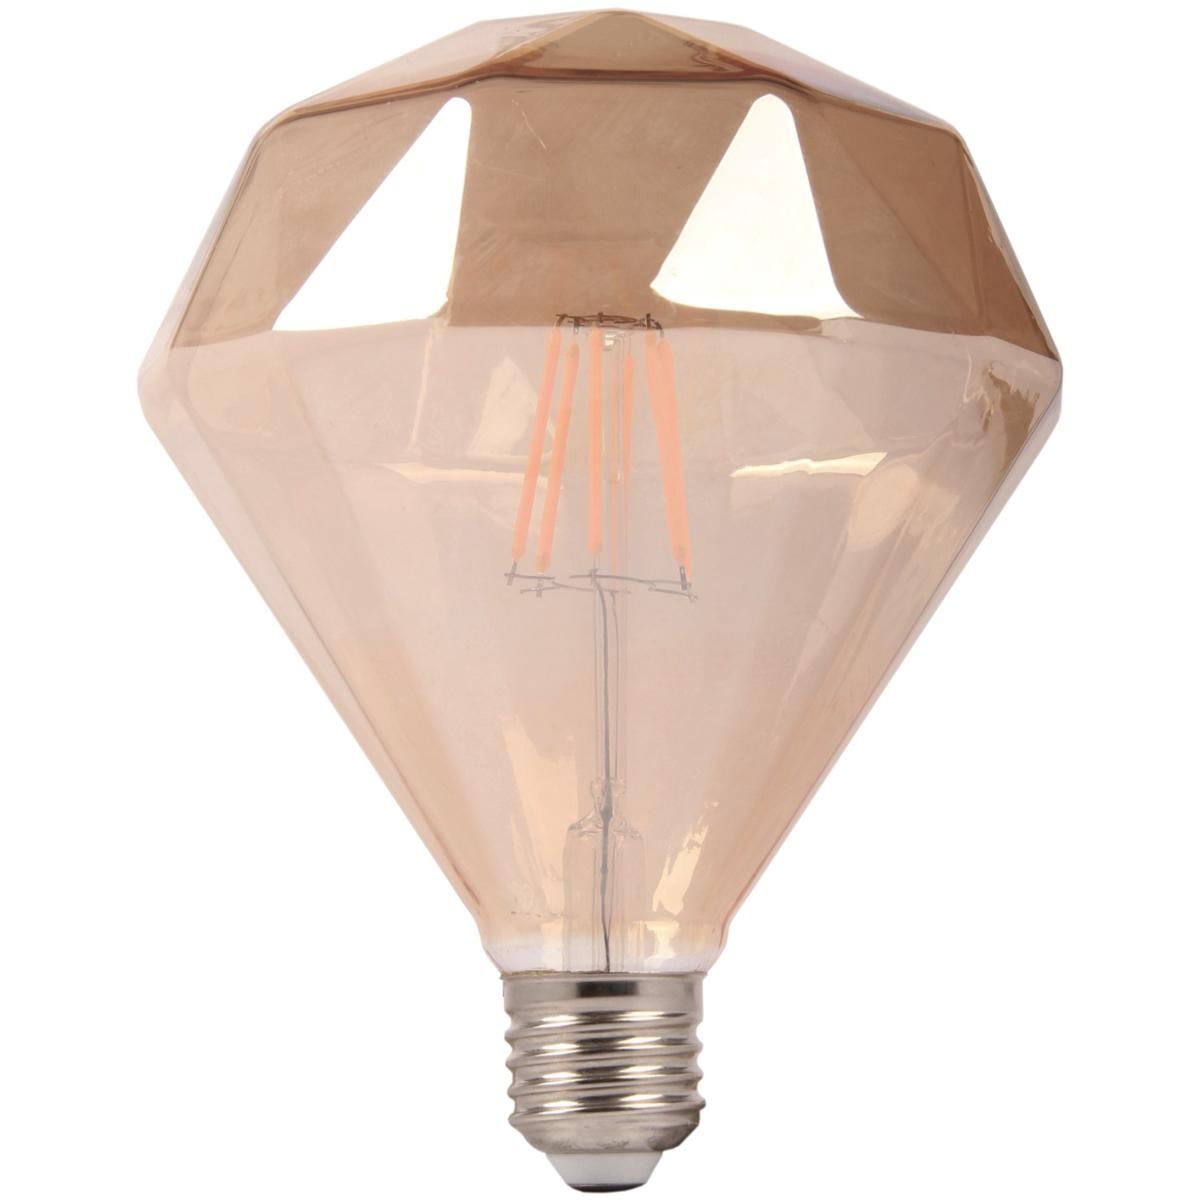 Ampoule Dimmable Ampoule Led E27 Dimmable 6w Ambrée Originale